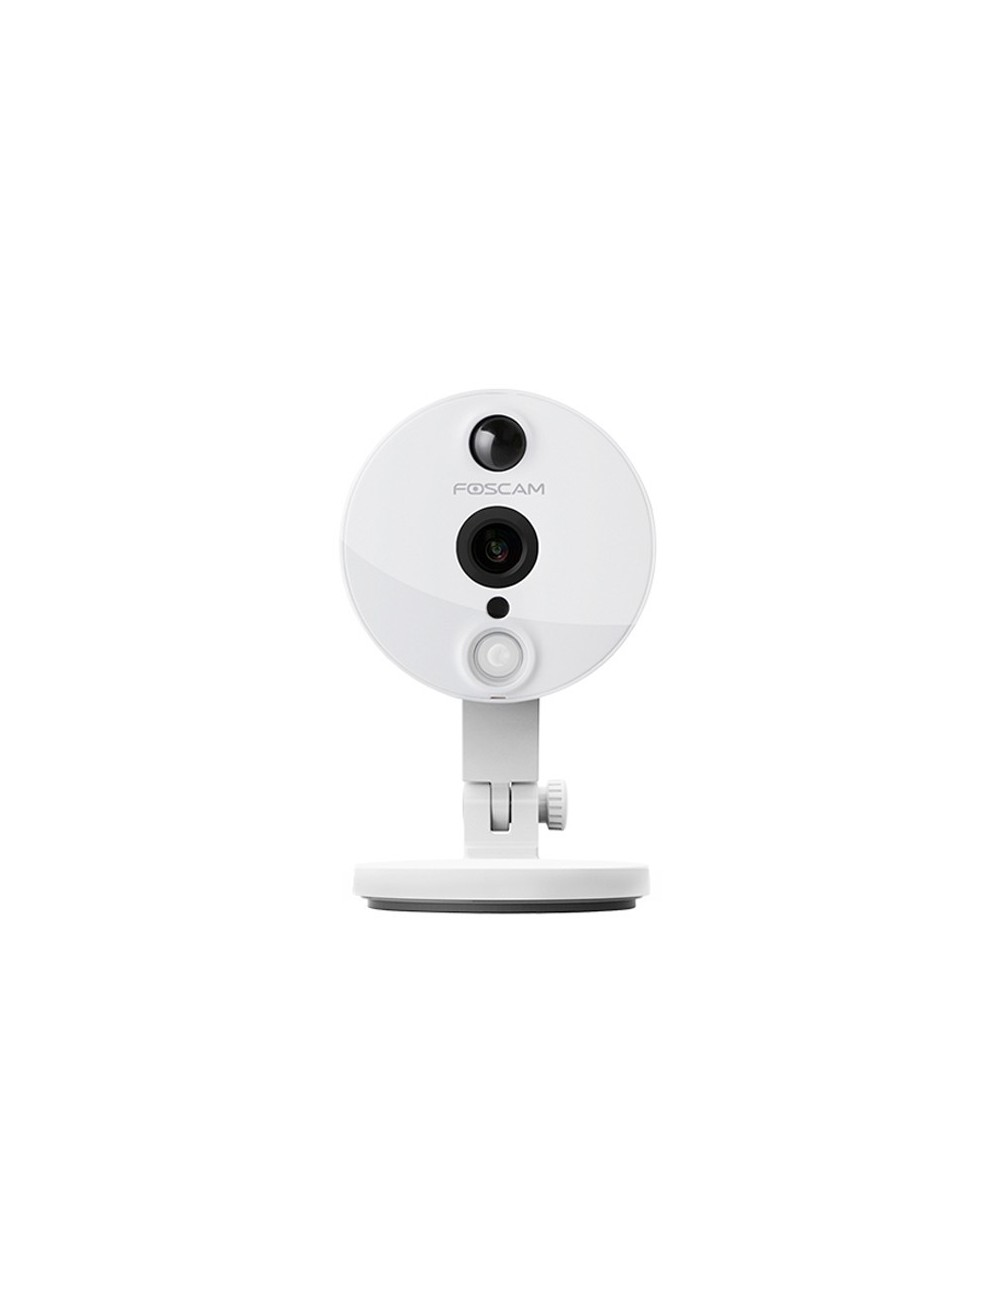 Foscam C2 - 2.0 Megapixel HD Wireless Mini IP Camera